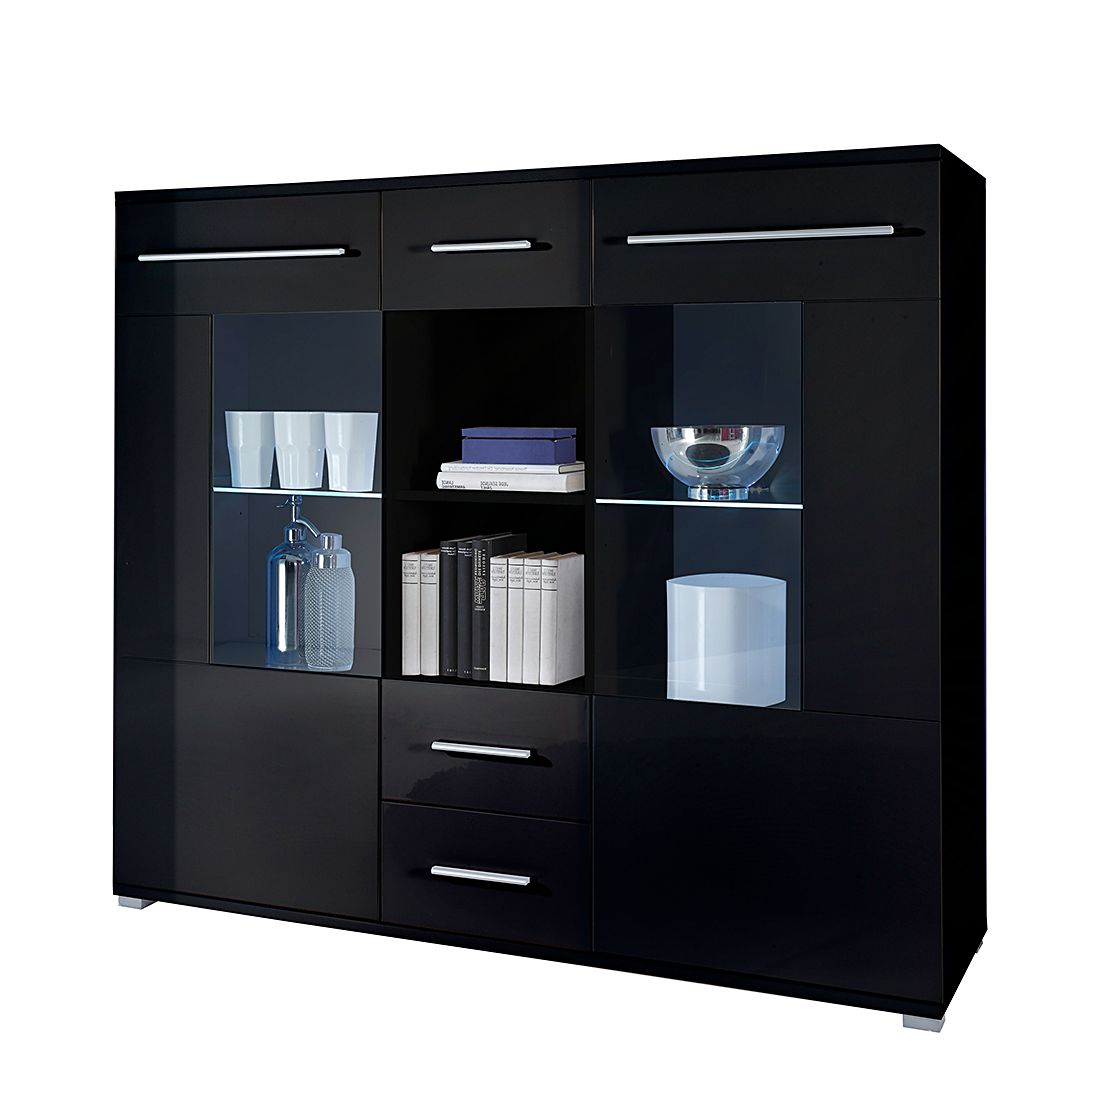 highboard mert schwarz hochglanz. Black Bedroom Furniture Sets. Home Design Ideas